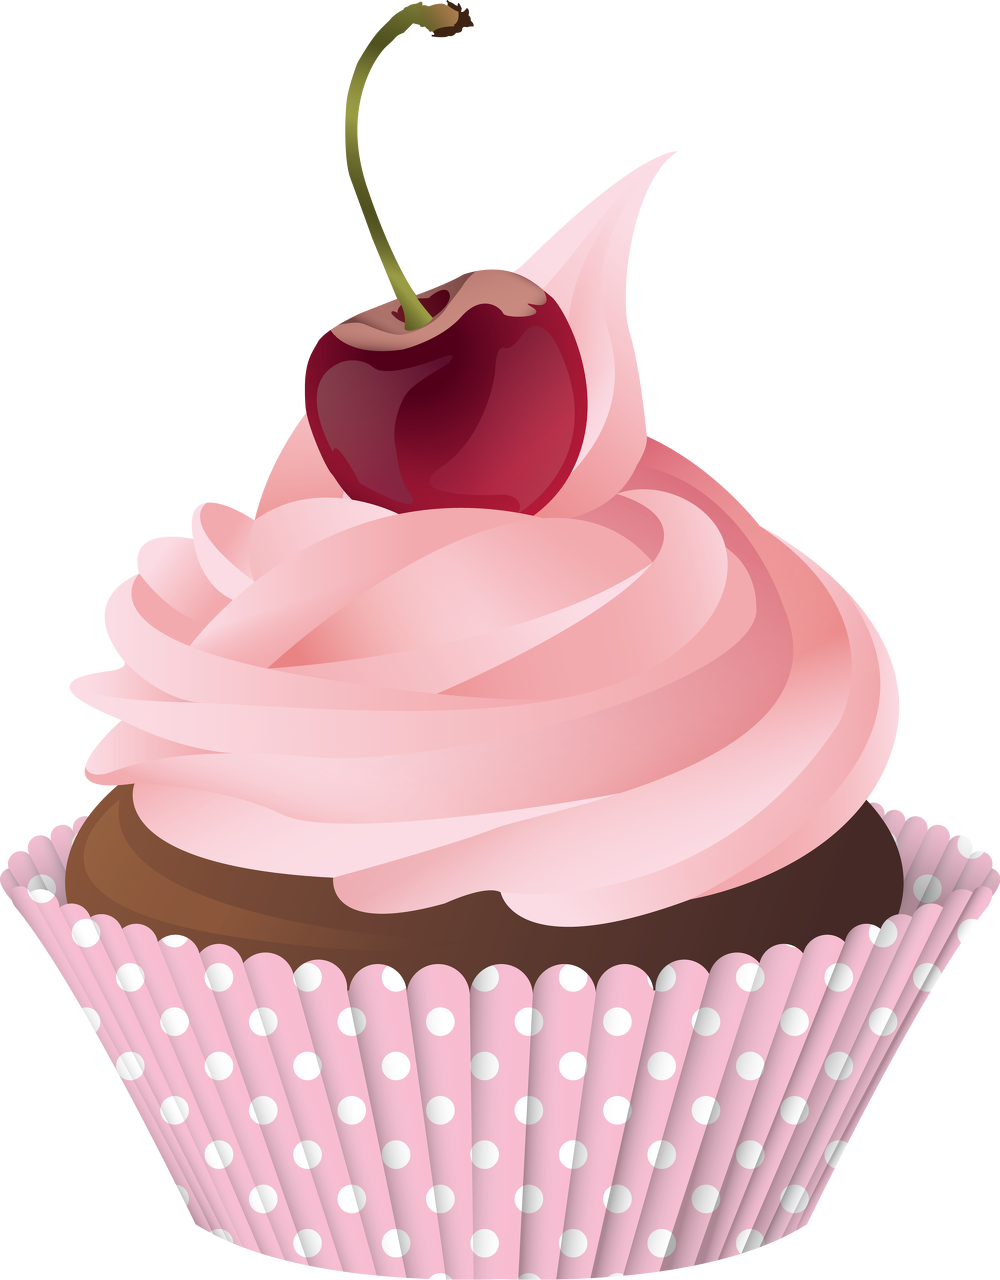 Say it With Cornish Cupcakes... Home Cupcake illustration